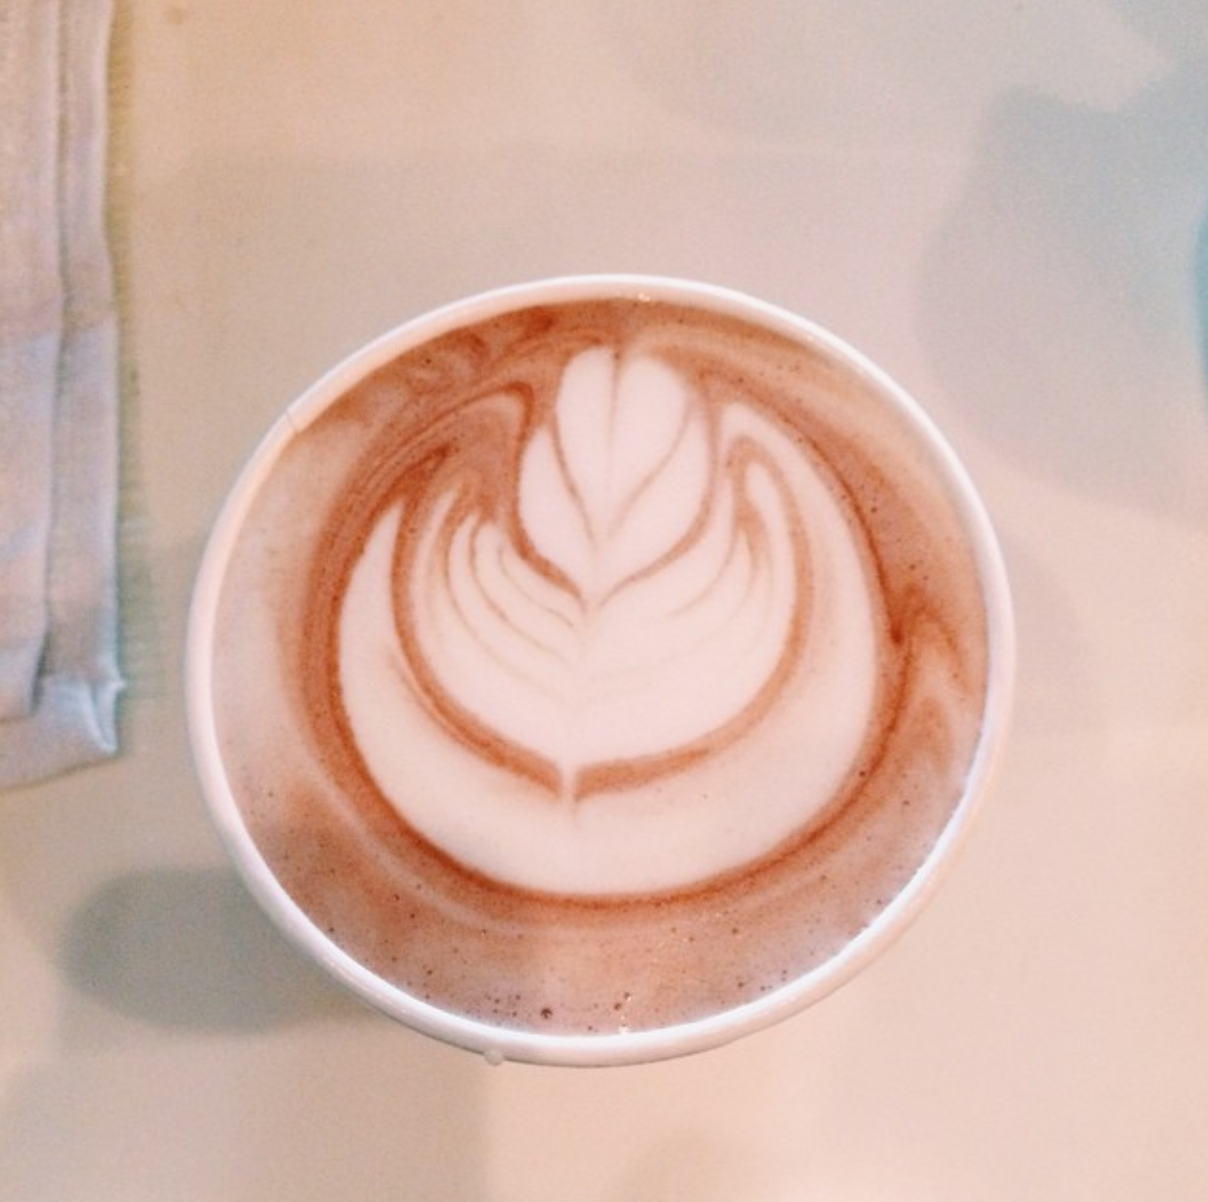 Hot chocolate? No further convincing necessary! Photo: @kamphx